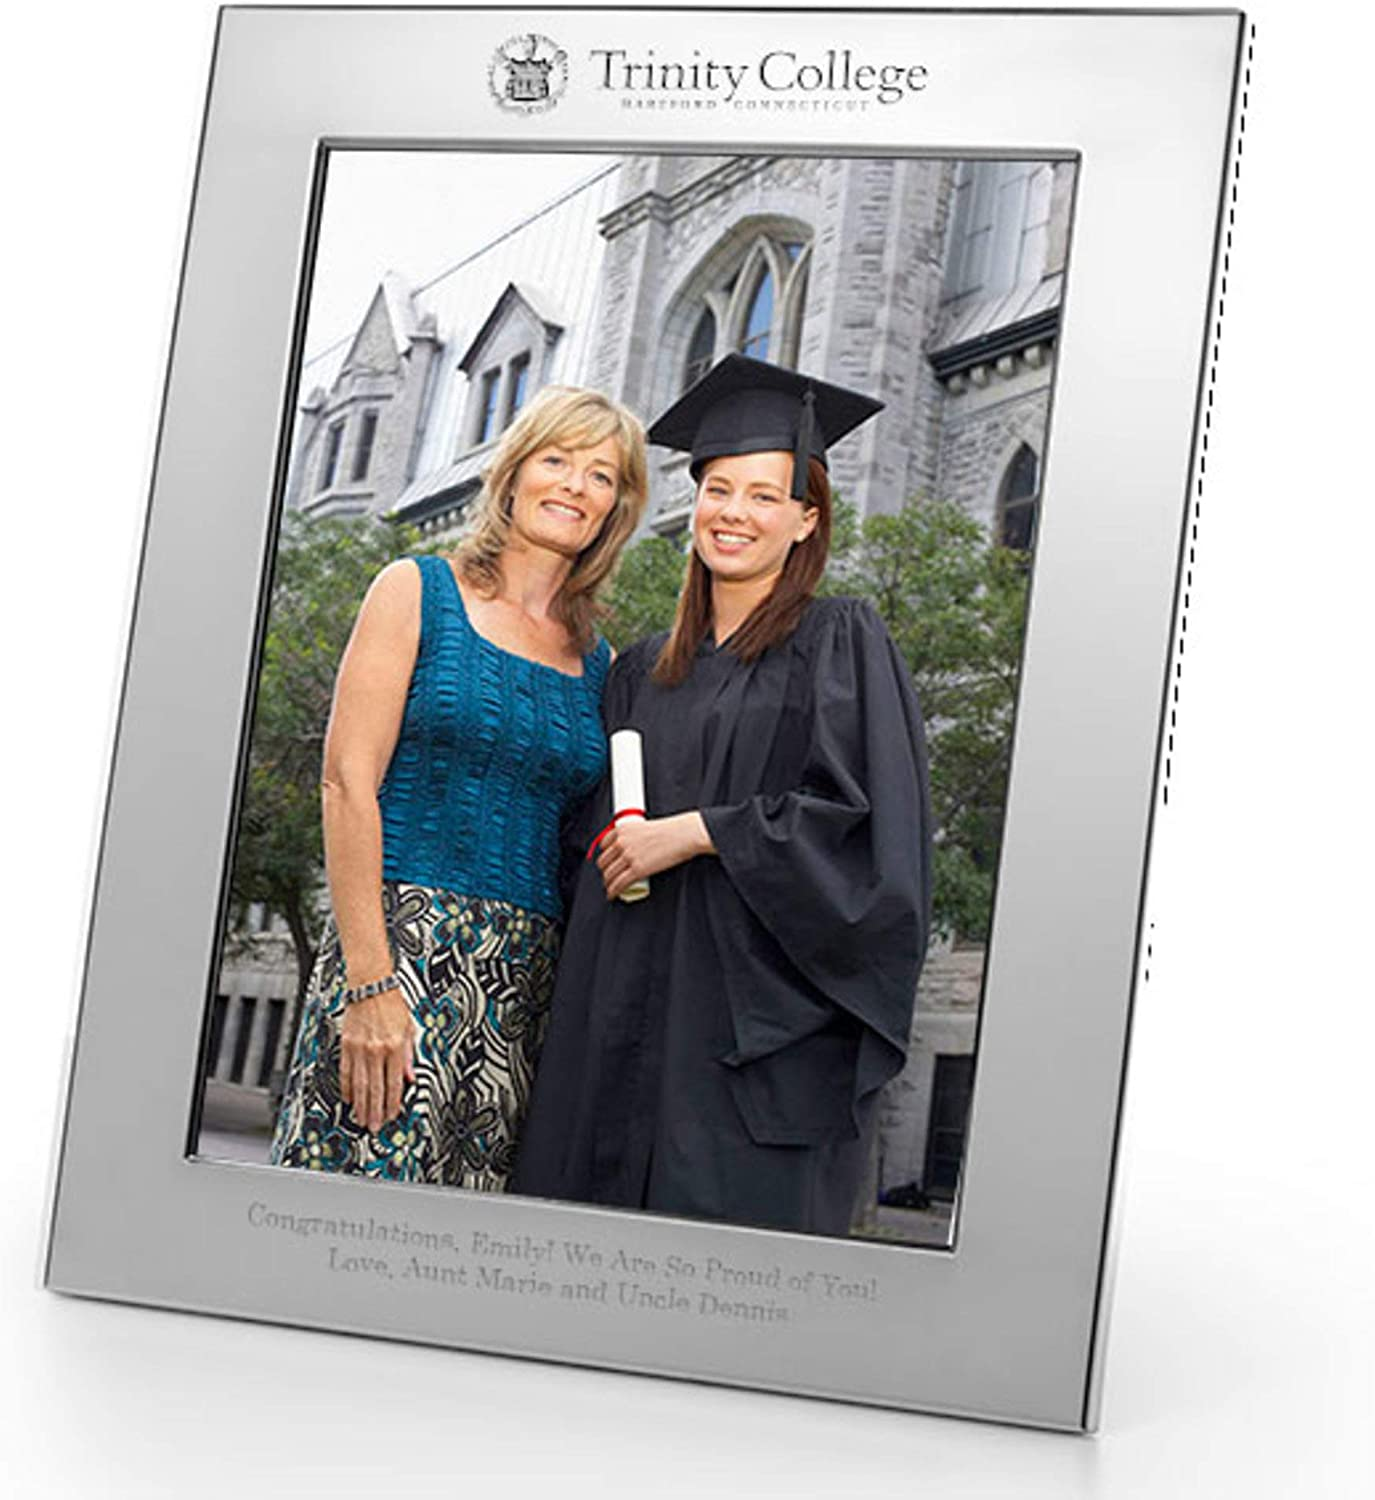 M. LA HART Trinity College Pewter Picture Polished 8x10 specialty shop Frame price